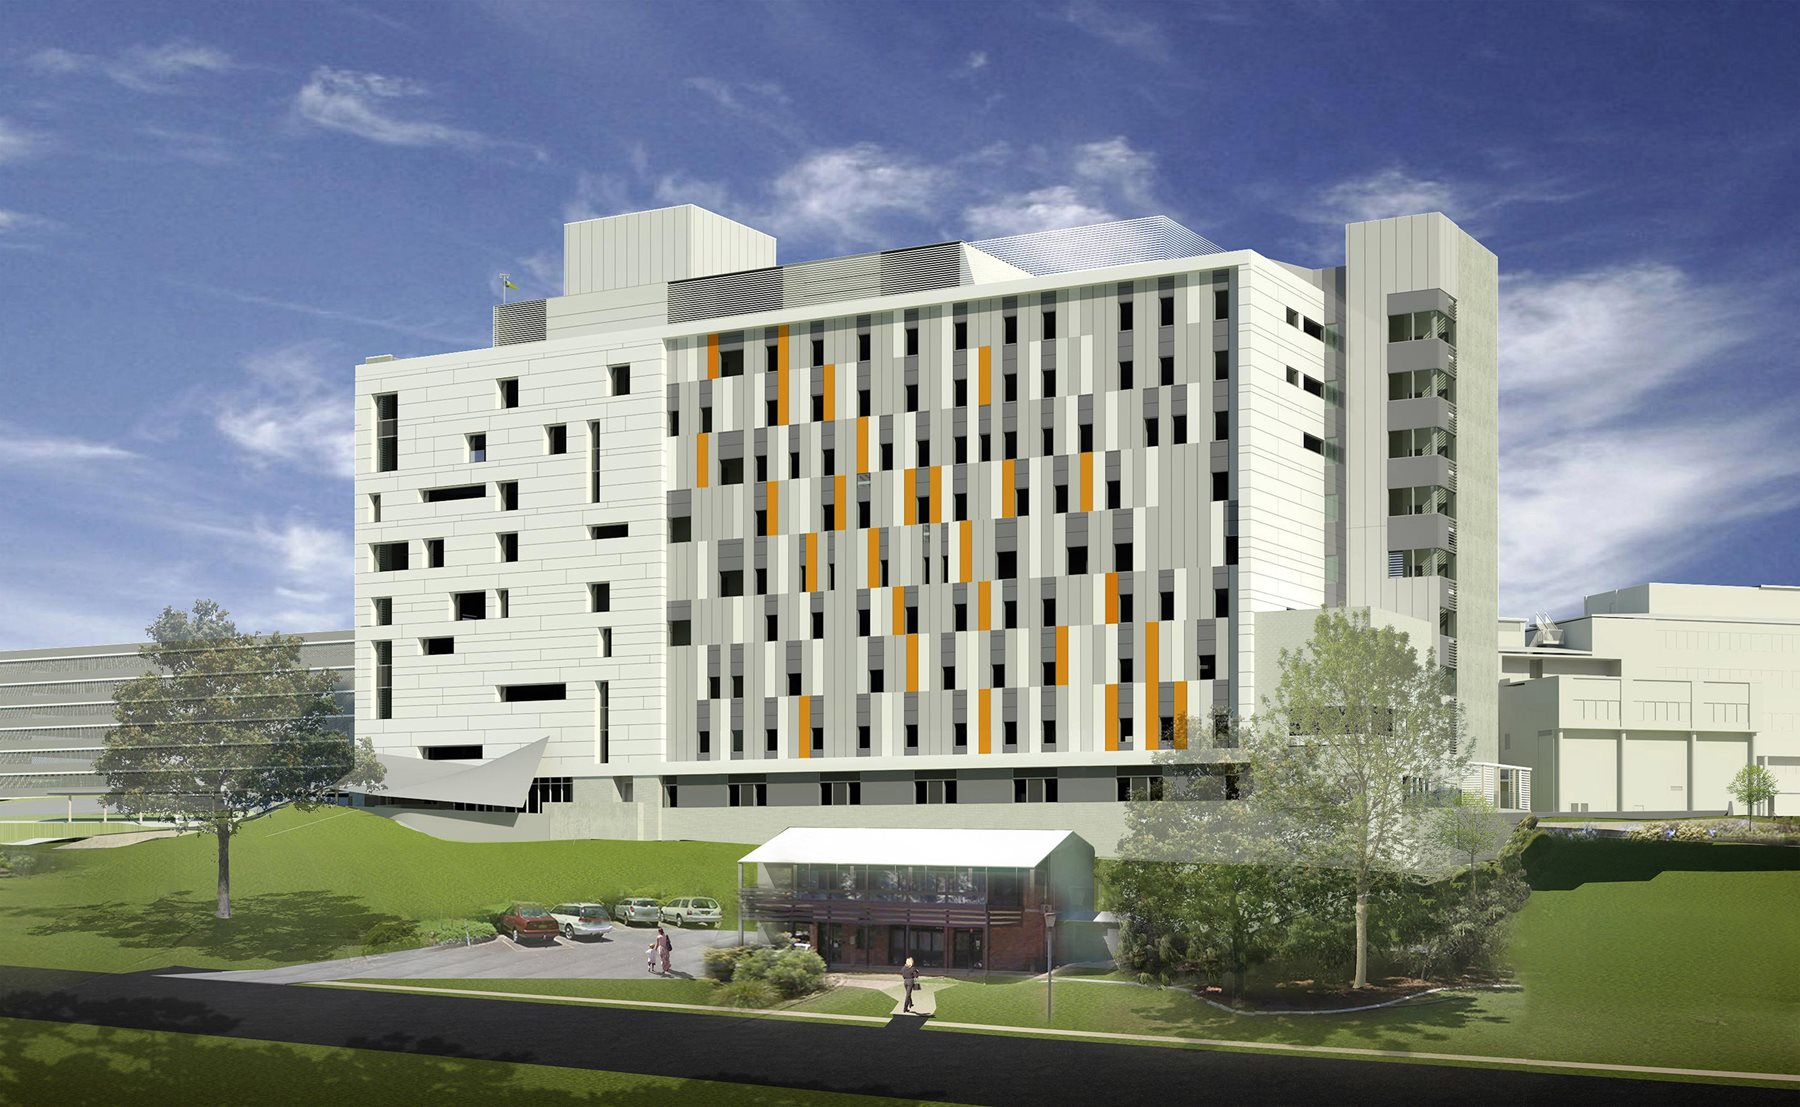 Central Coast welcomes opening of new Hospital Tower